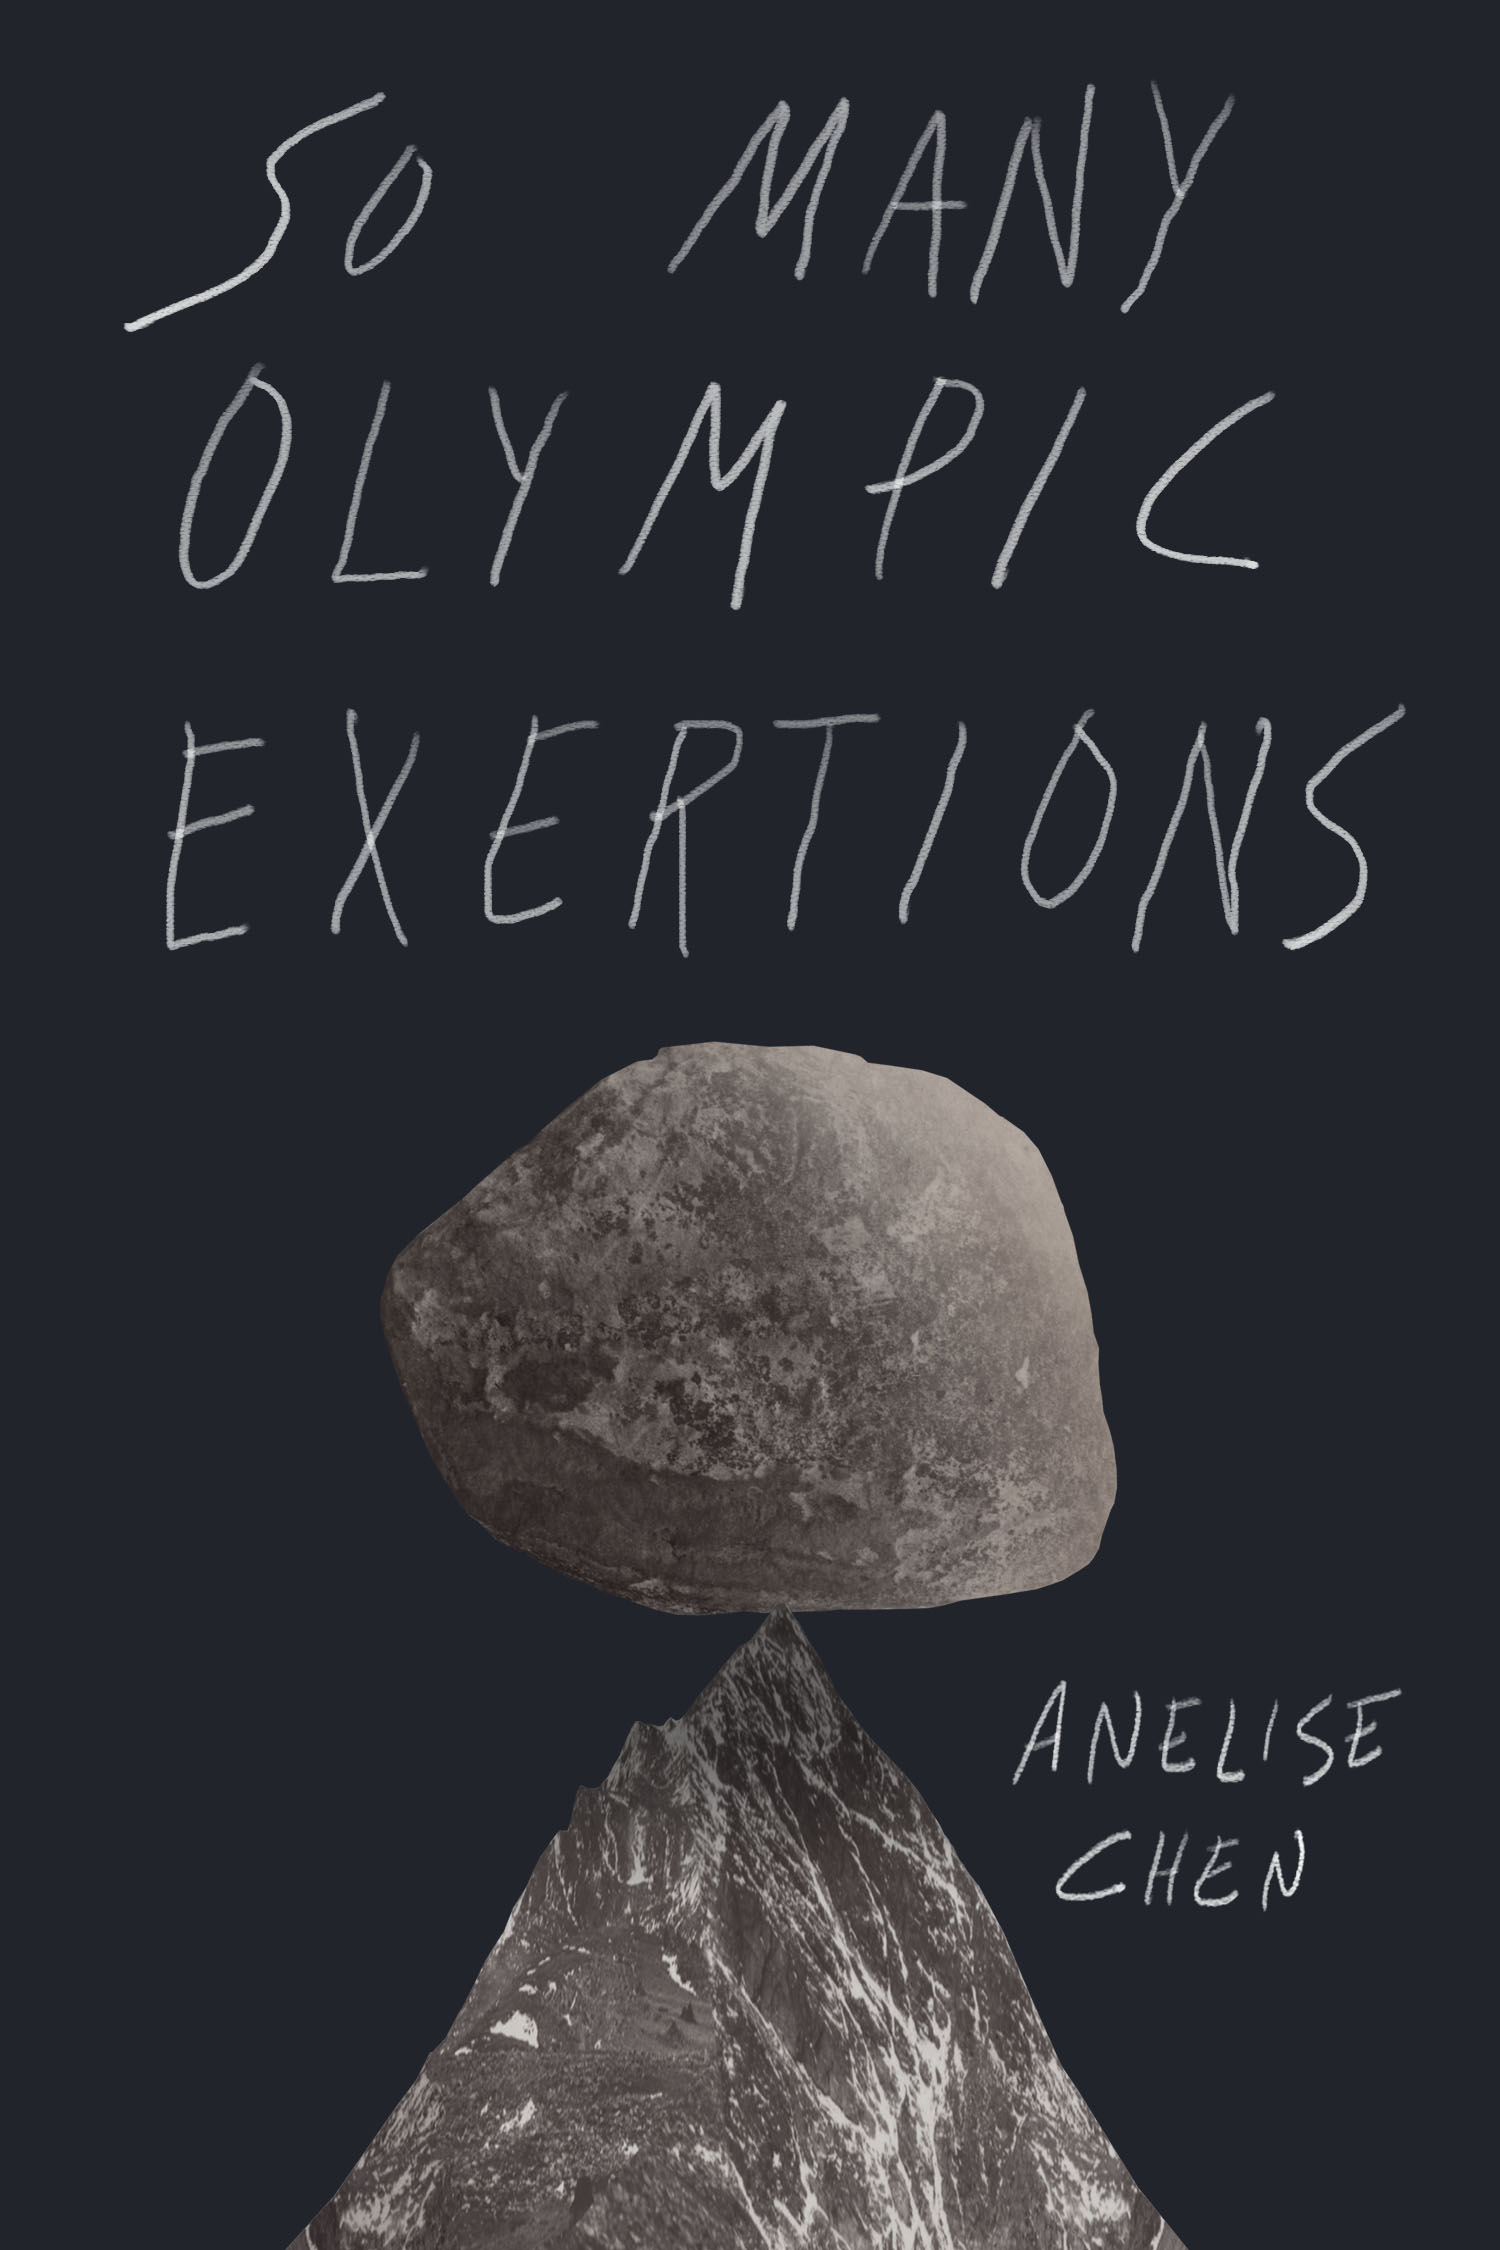 Book Launch: So Many Olympic Exertions by Anelise Chen — Featuring Readings by Leanne Shapton & Katie Kitamura